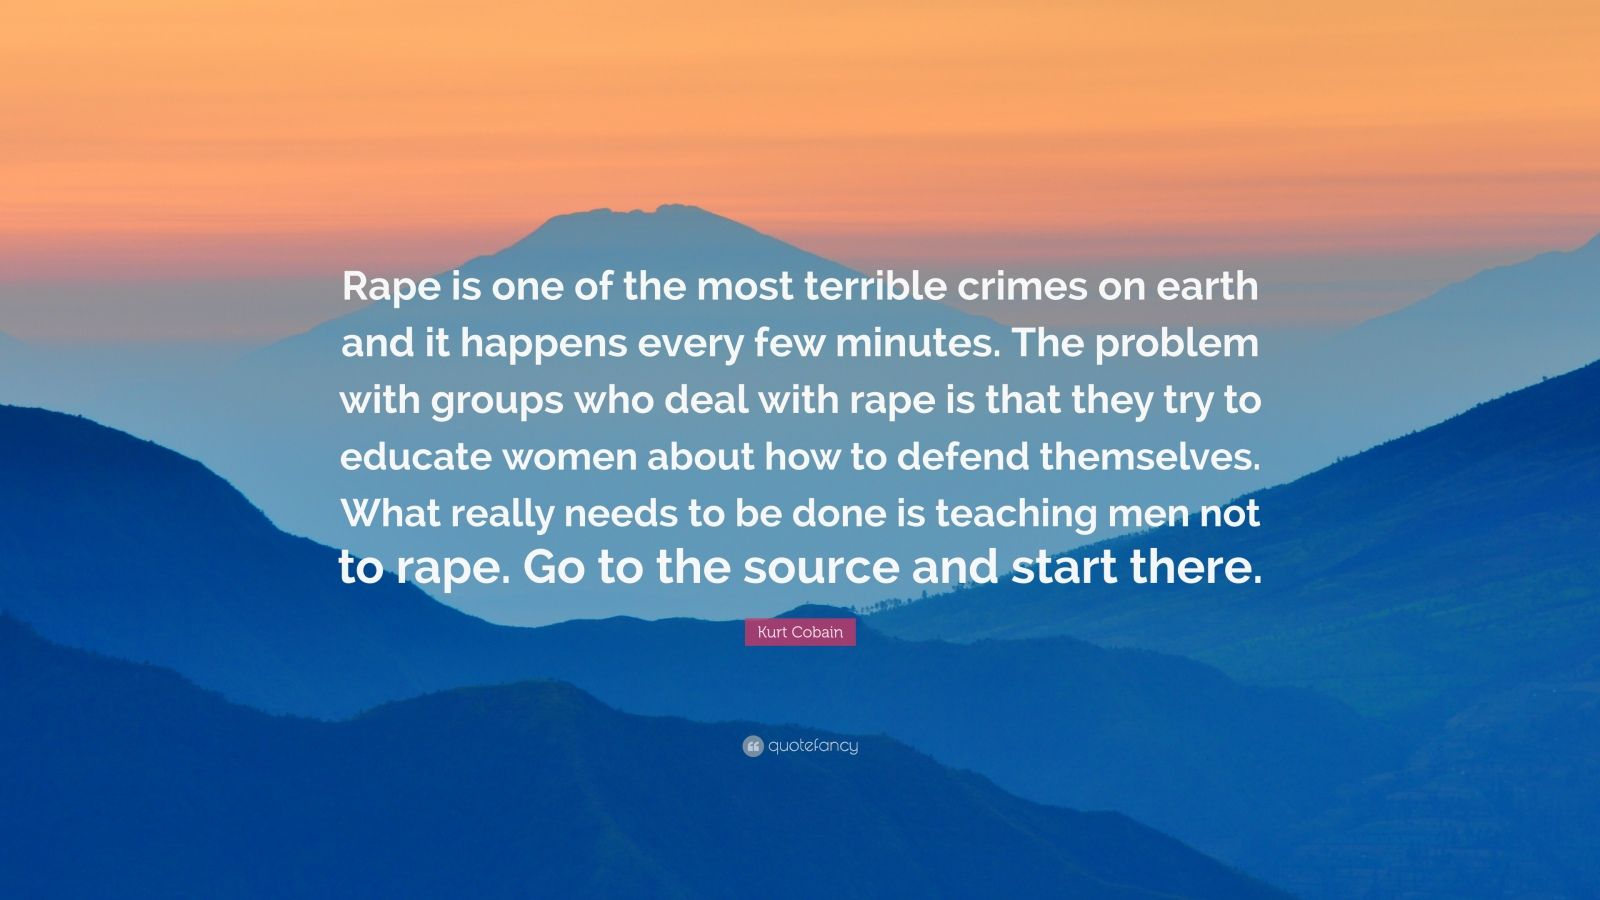 "Kurt Cobain Quote: ""Rape is one of the most terrible crimes on earth and it happens every few minutes. The problem with groups who deal with rape is that they try to educate women about how to defend themselves. What really needs to be done is teaching men not to rape. Go to the source and start there."""